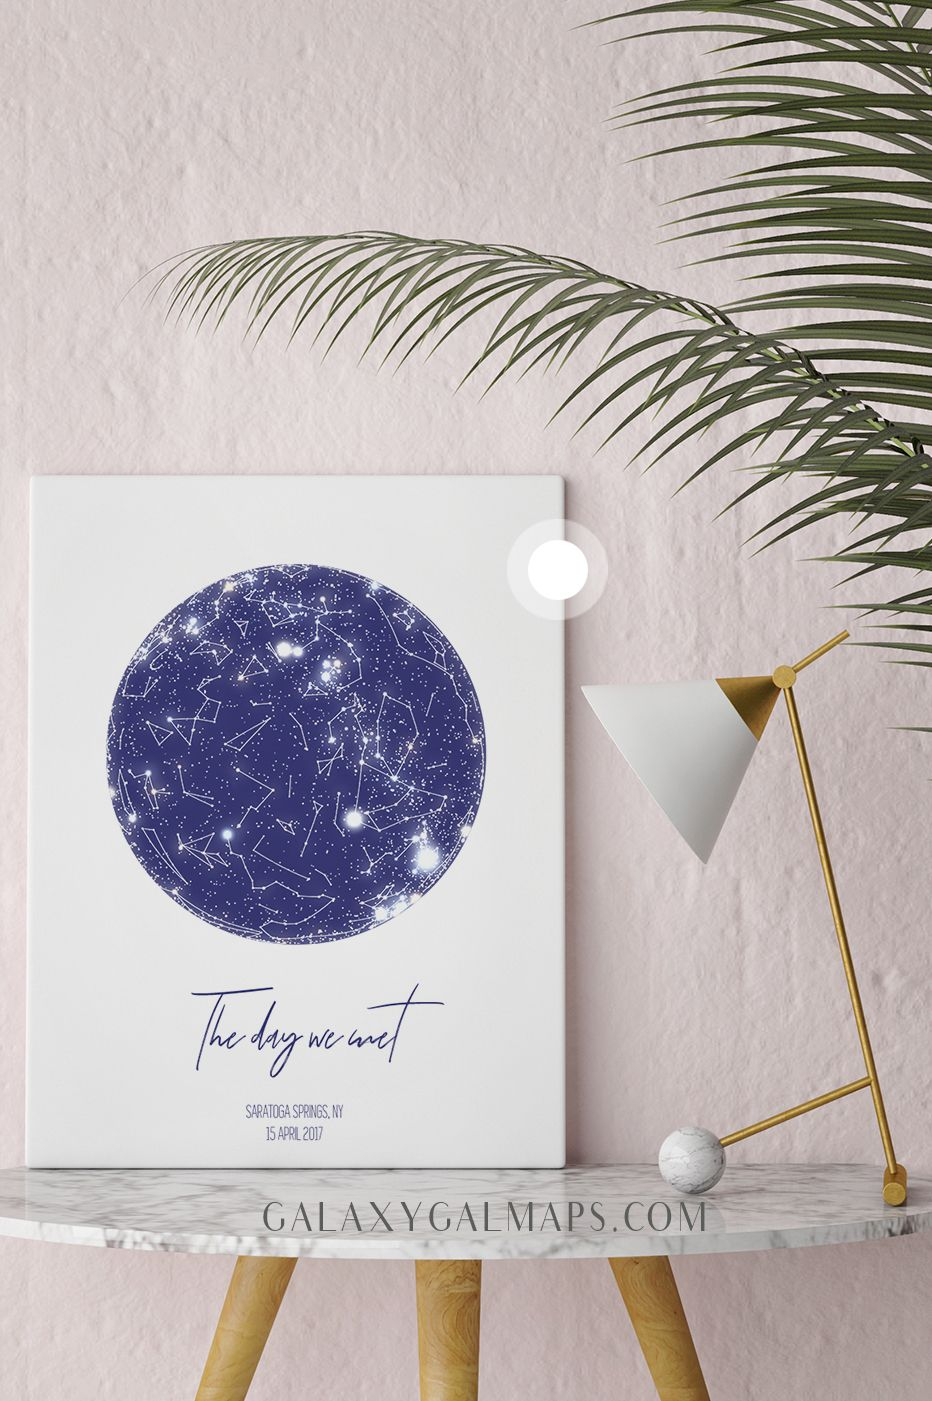 Star Map By Date And Location.Personal Star Map By Date And Location First Date Gift Our First